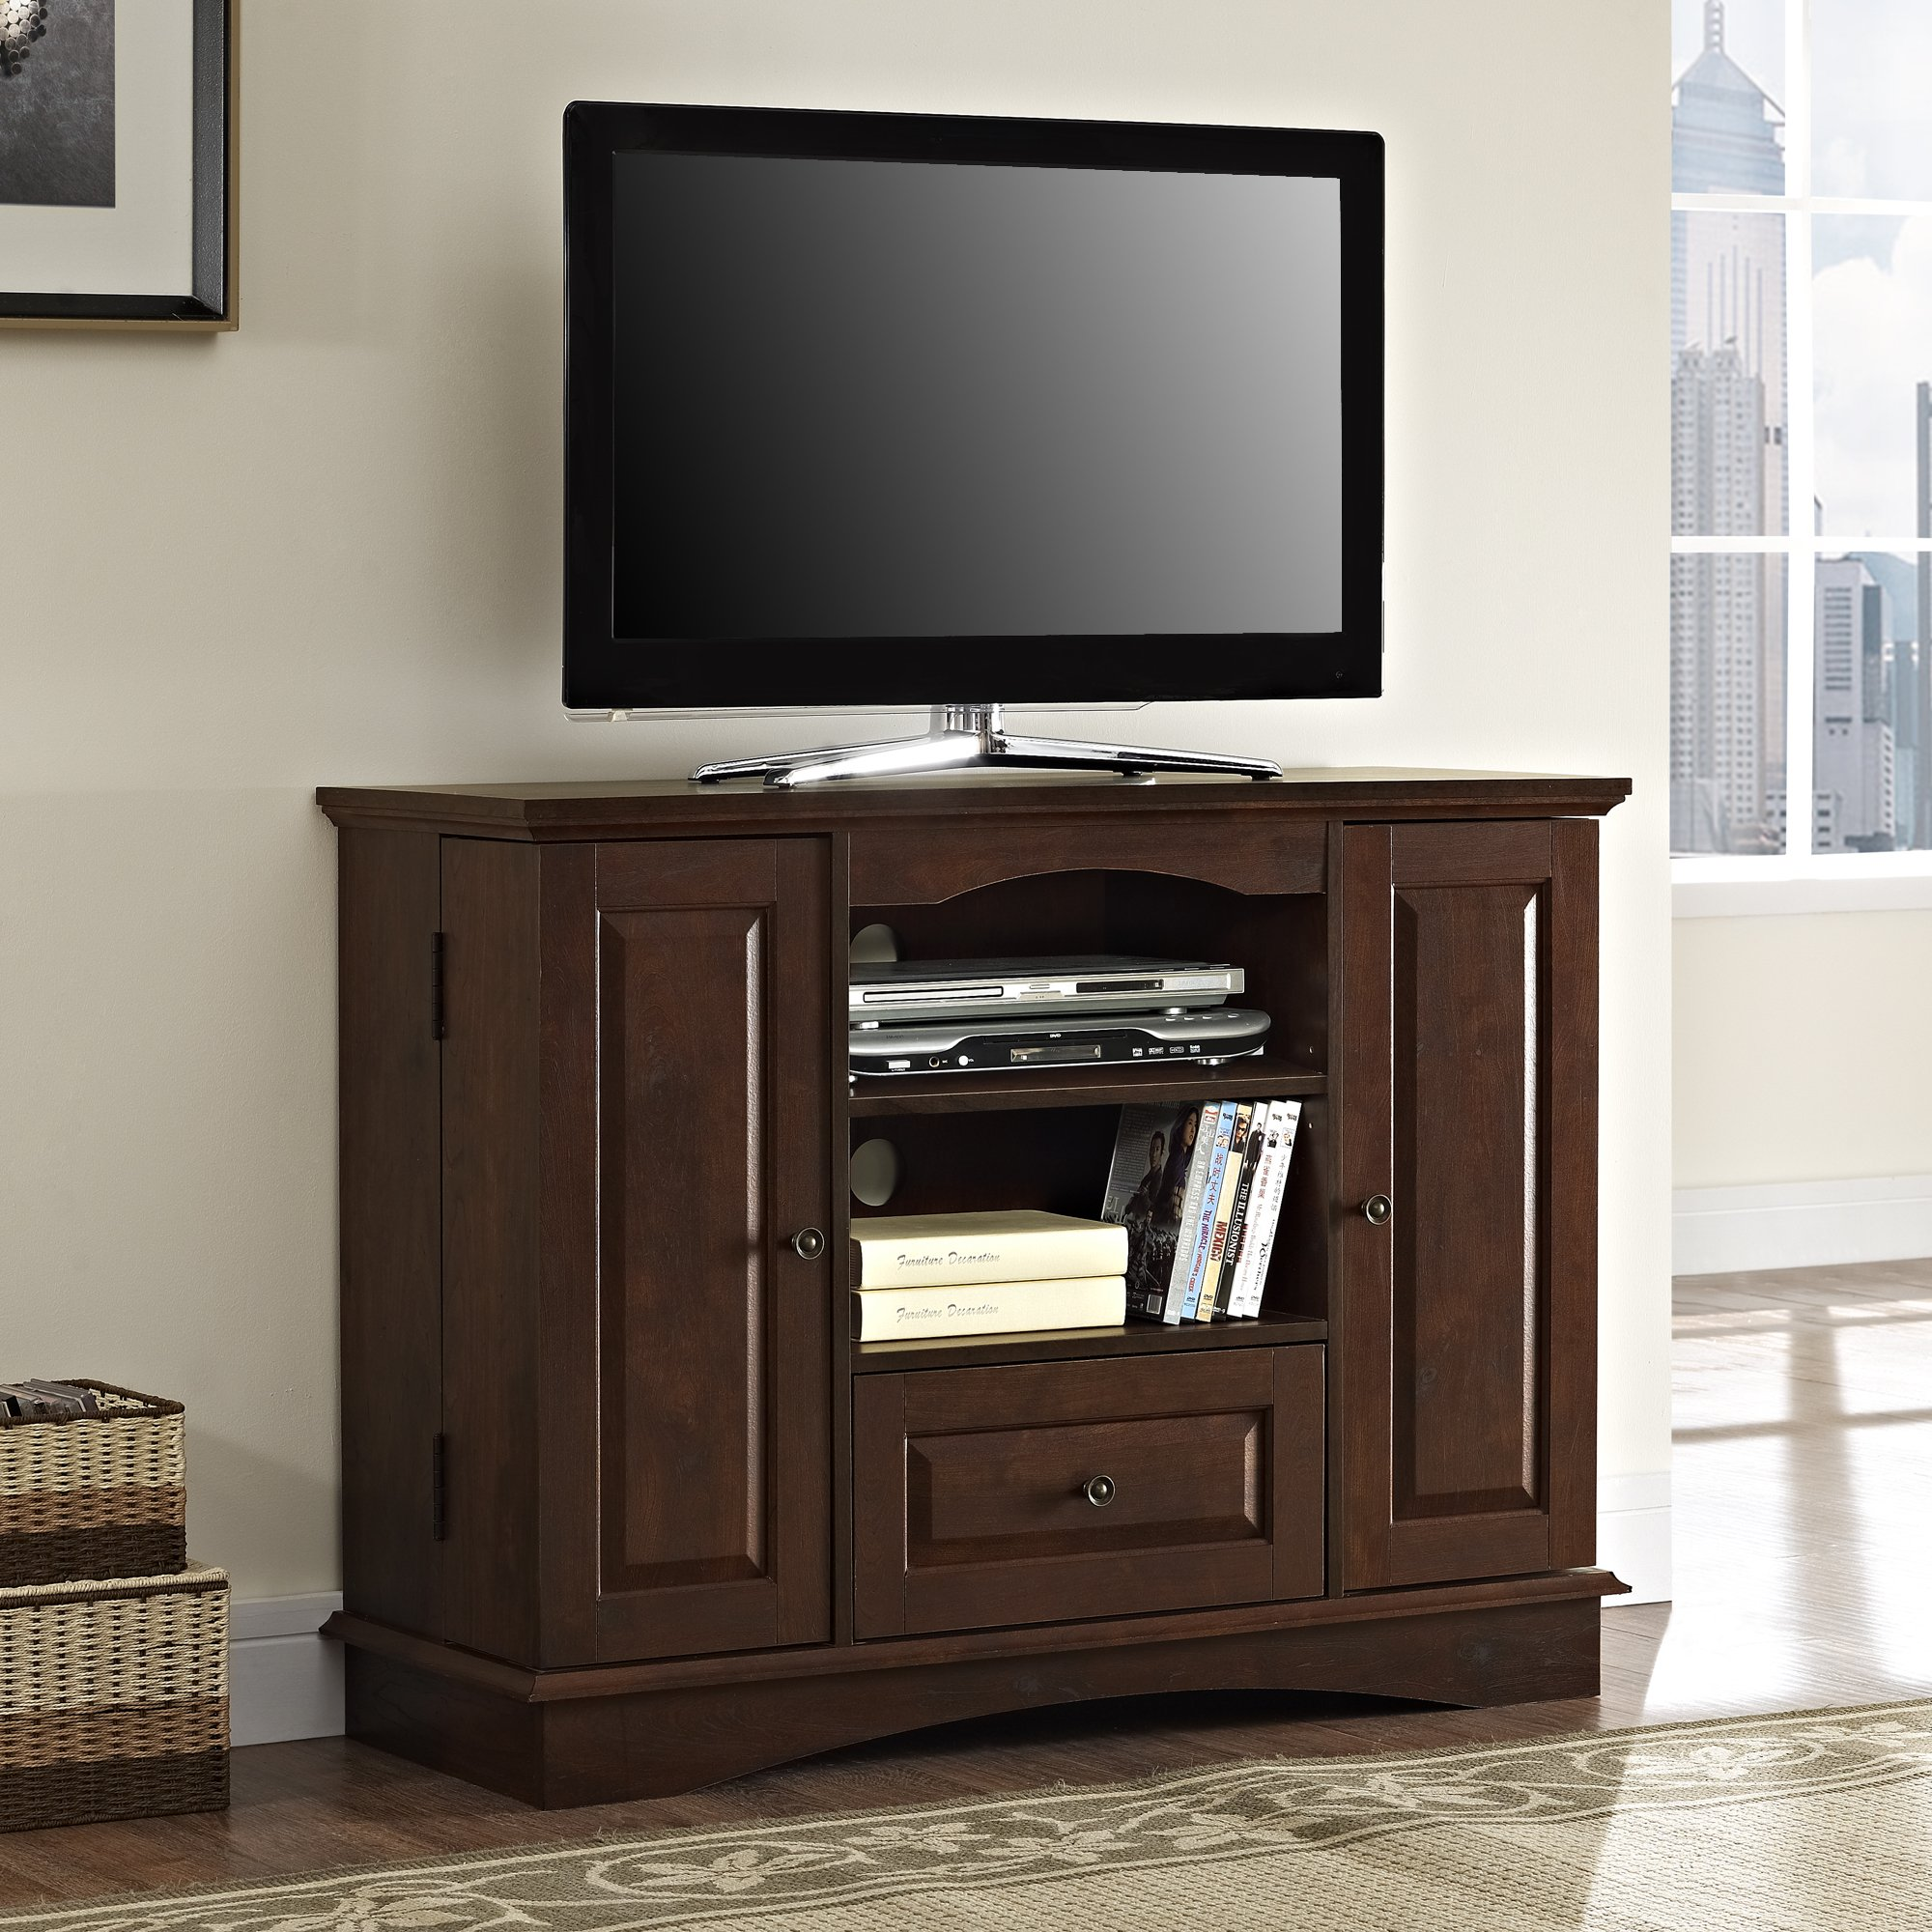 Walker Edison 42'' Highboy Style Wood TV Stand Console, Brown